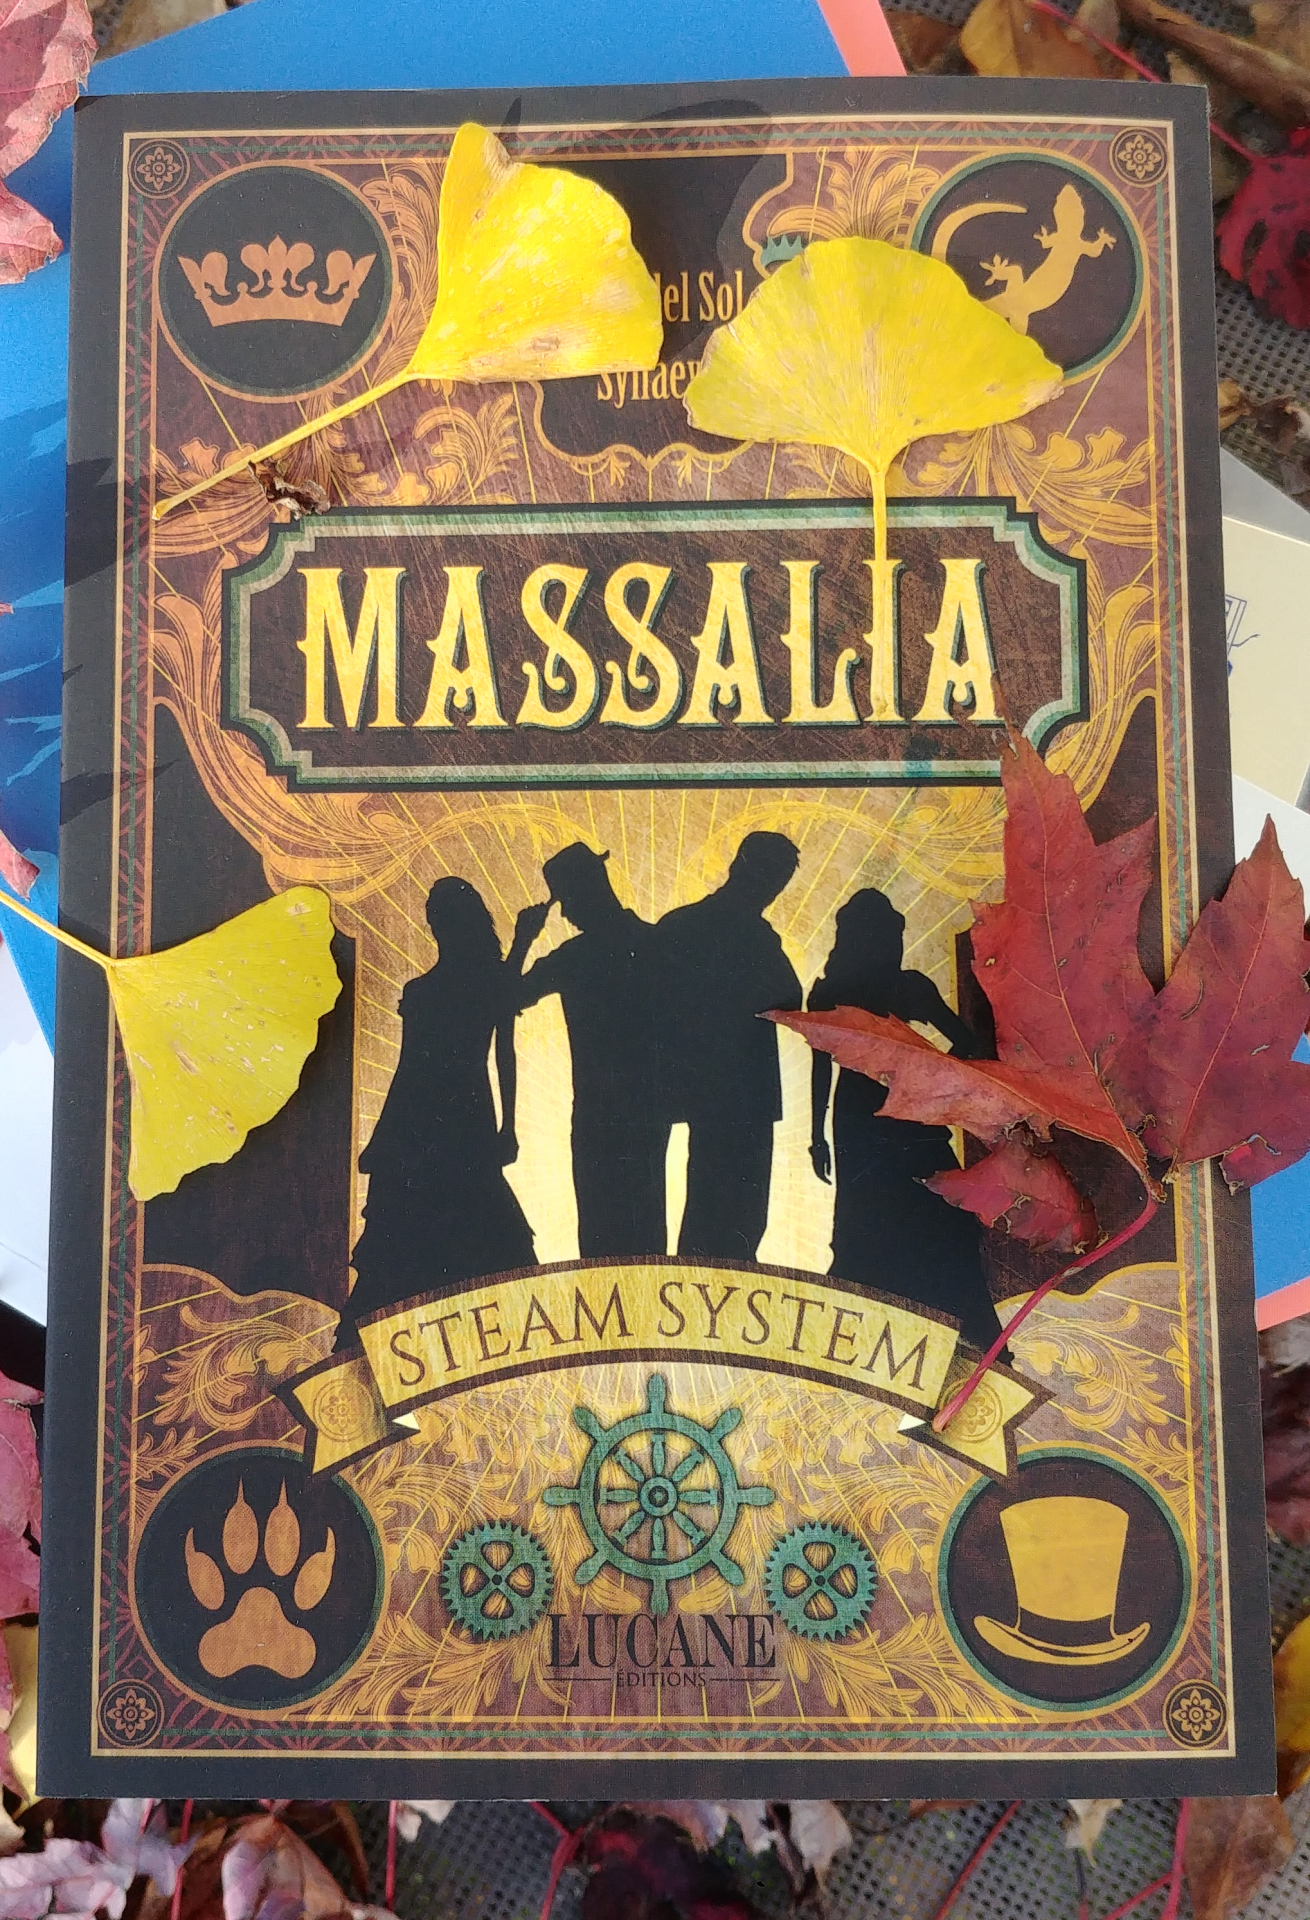 Massalia steam system